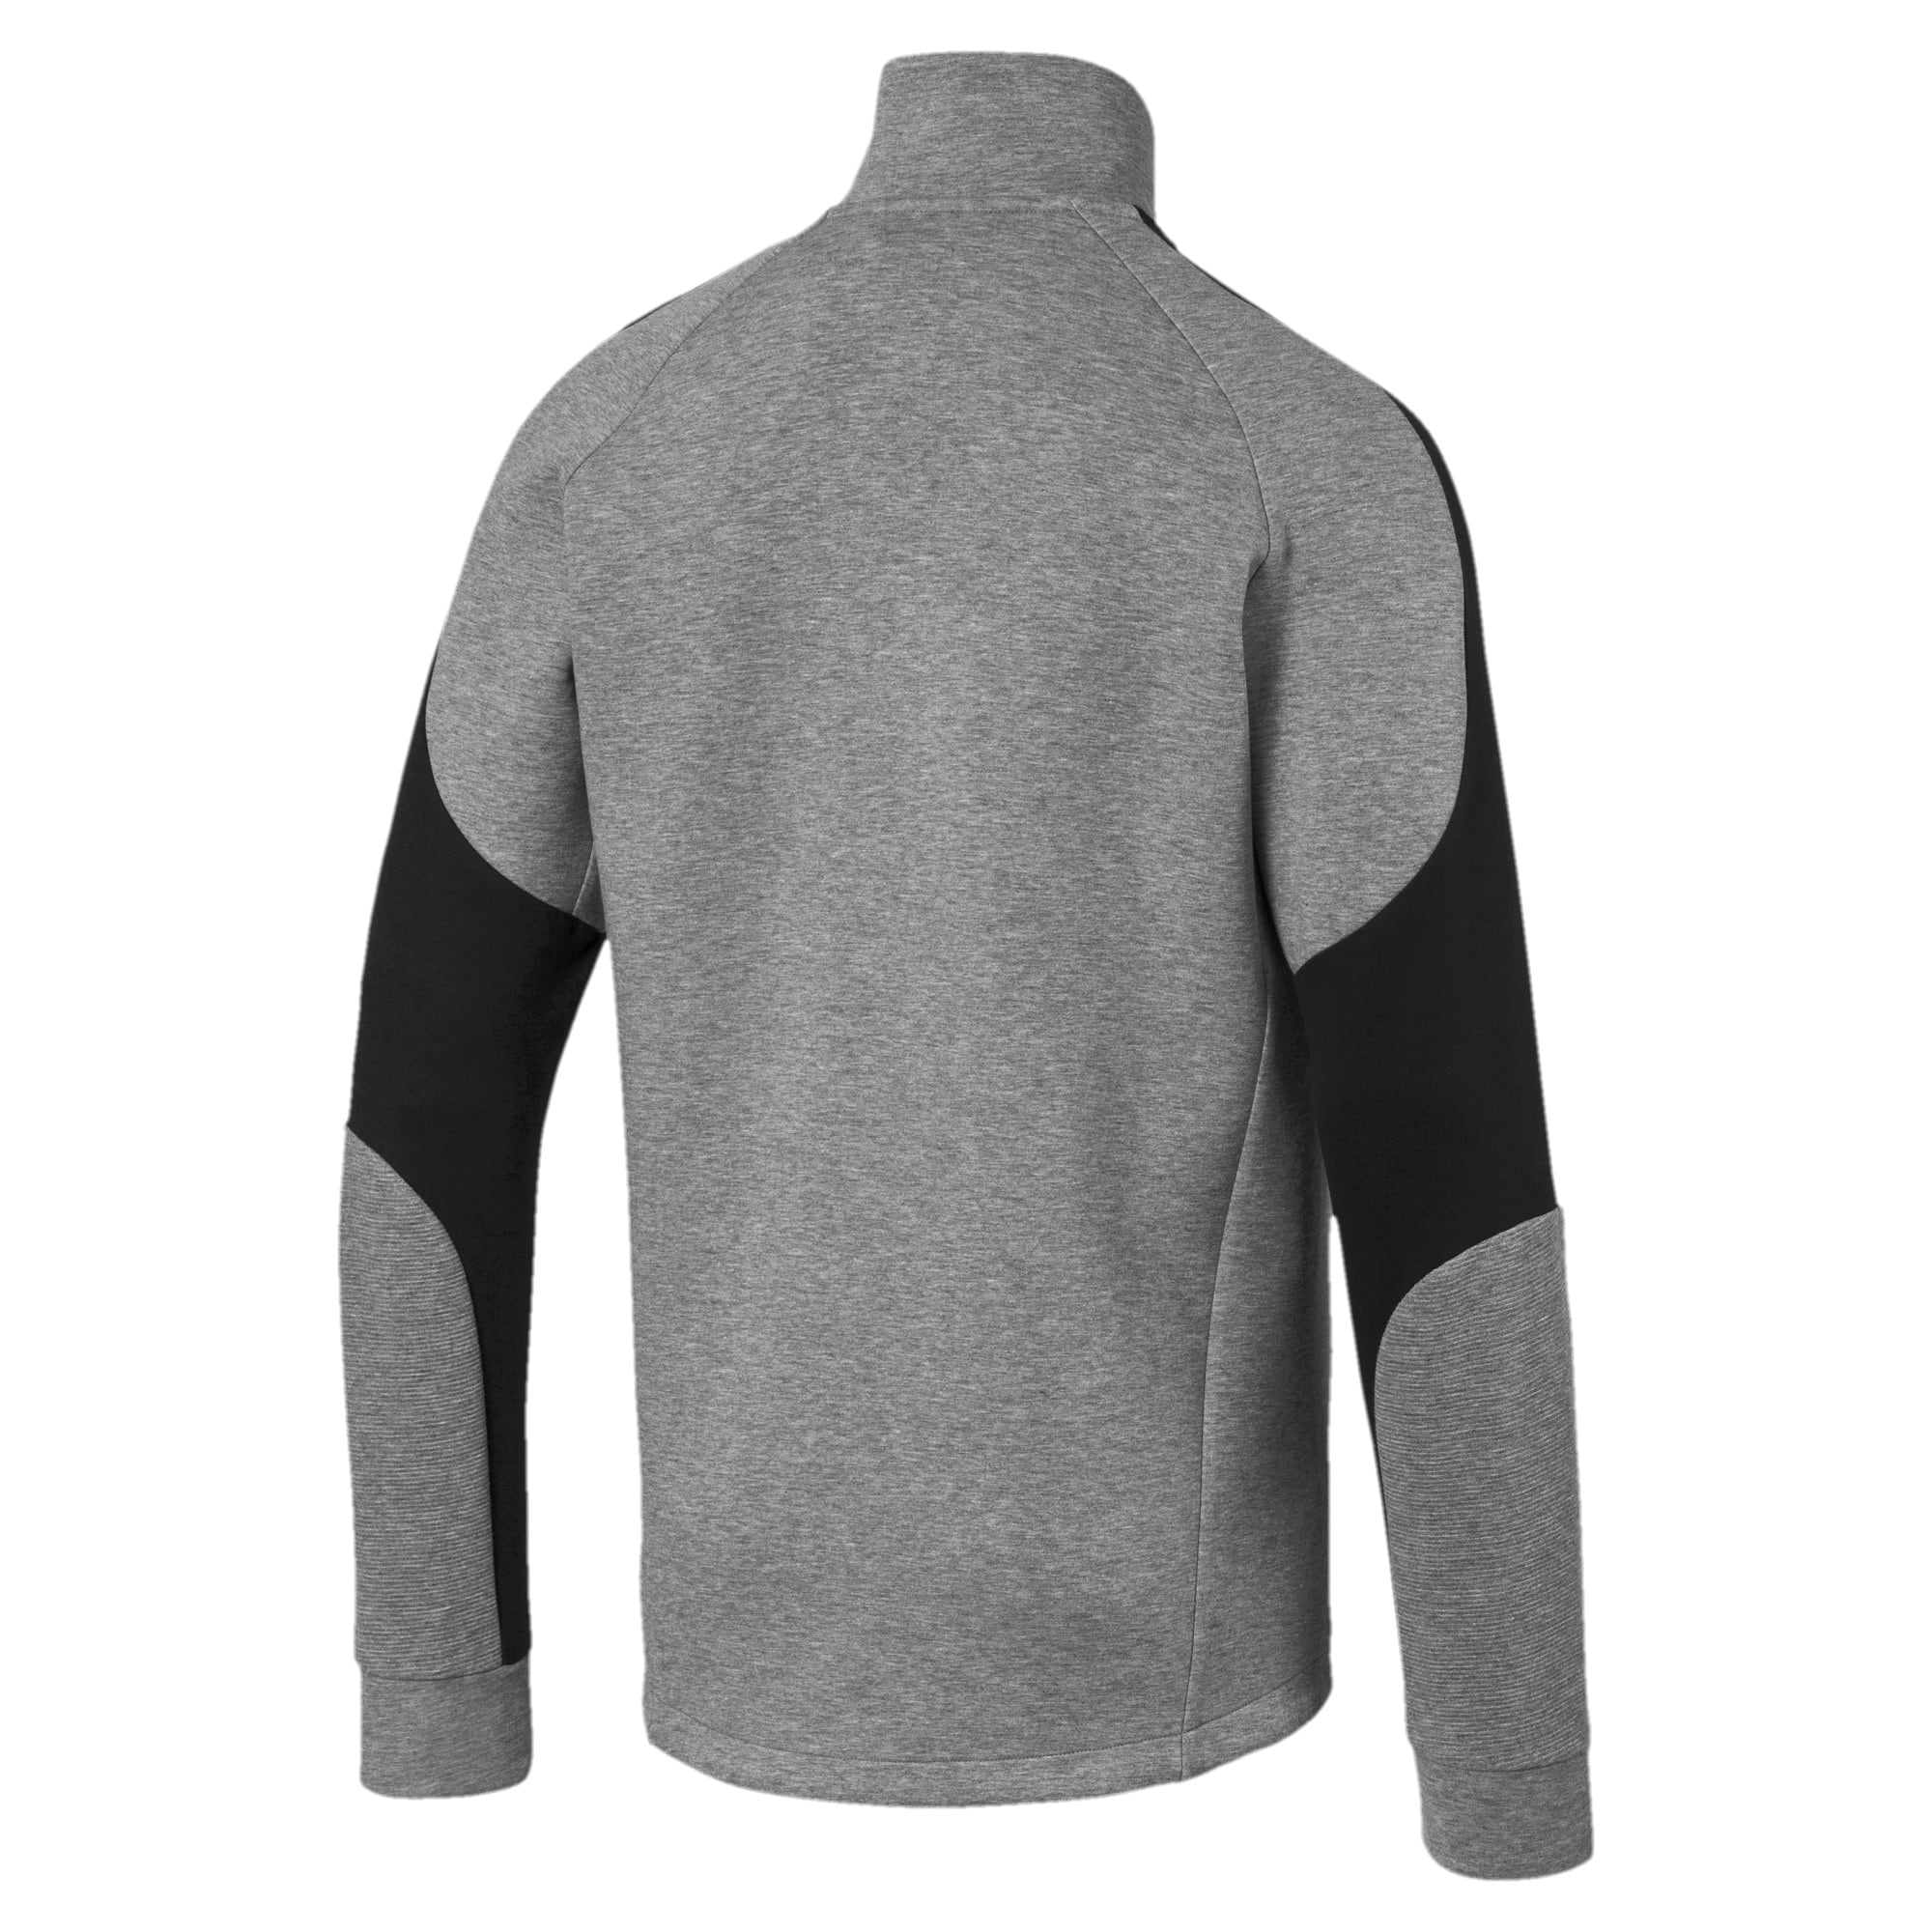 Miniatura 5 de Chaqueta Evostripe para hombre, Medium Gray Heather, mediano